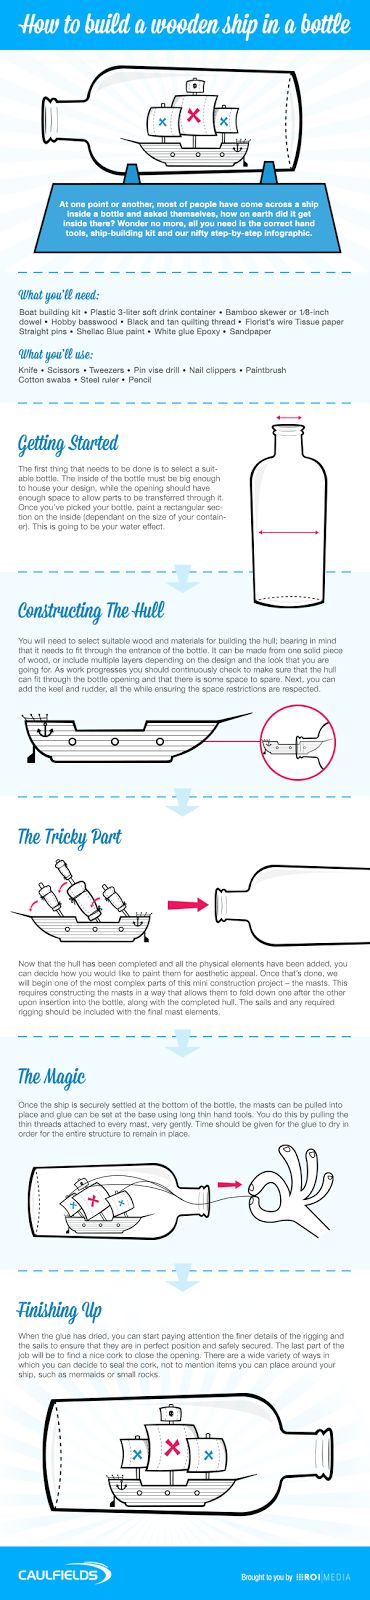 How to build a wooden ship in a bottle